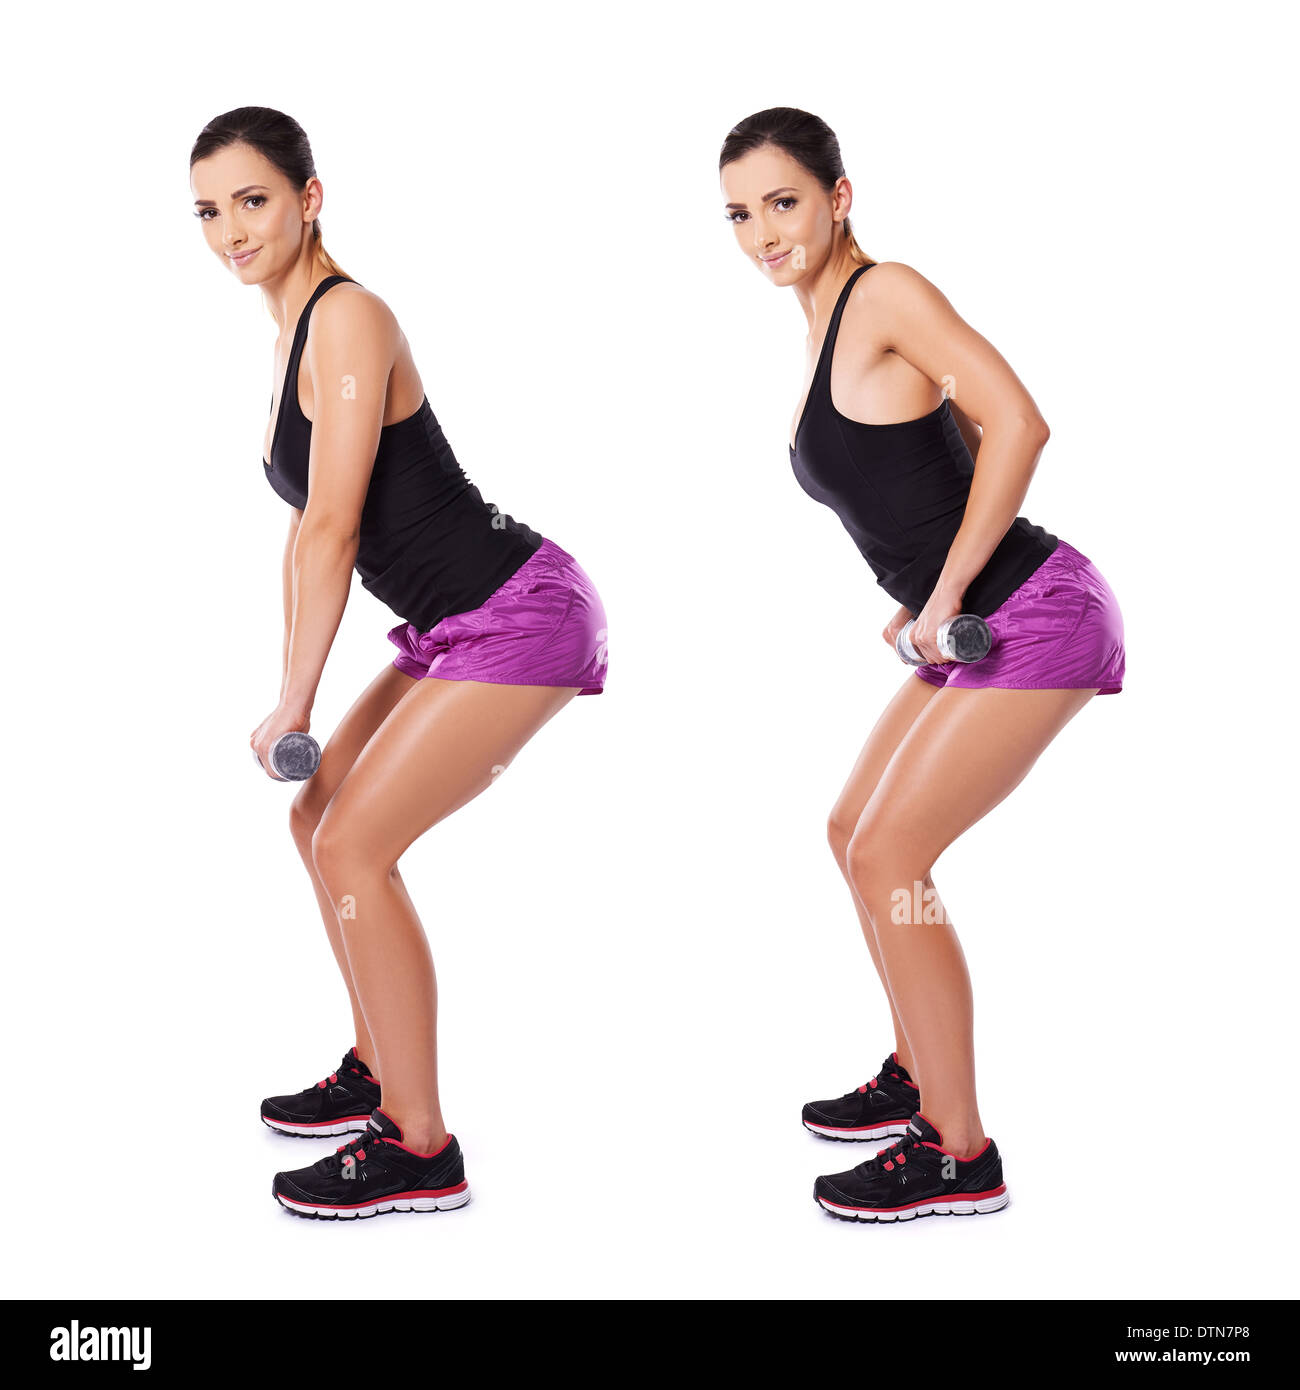 Shapely woman working with dumbbells - Stock Image